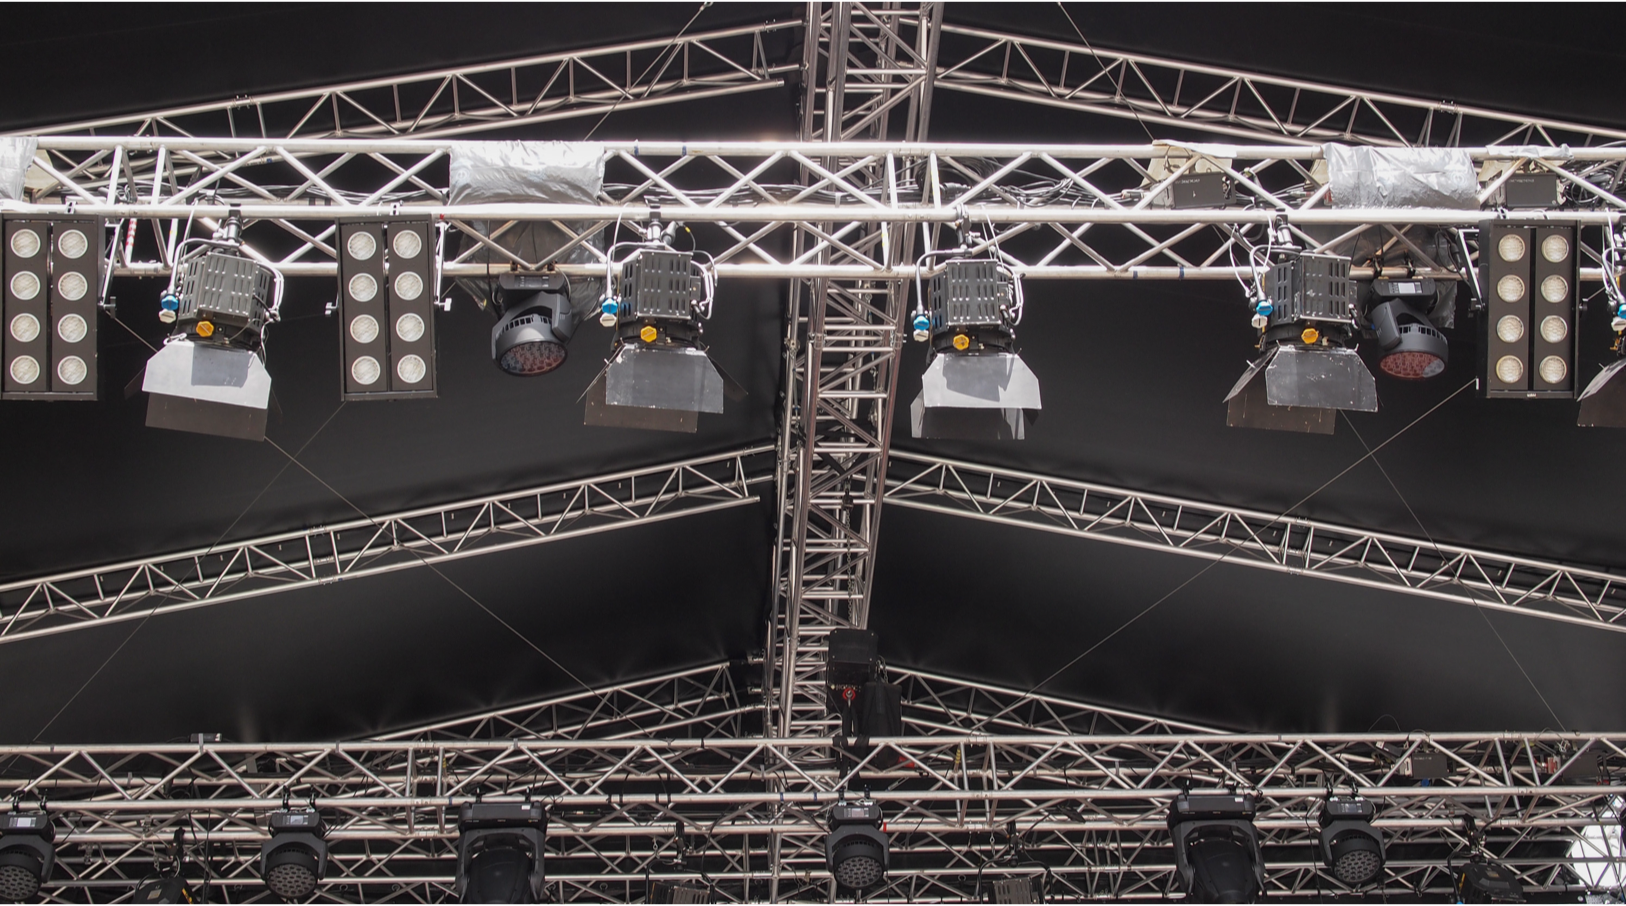 Stage Rigging & Events